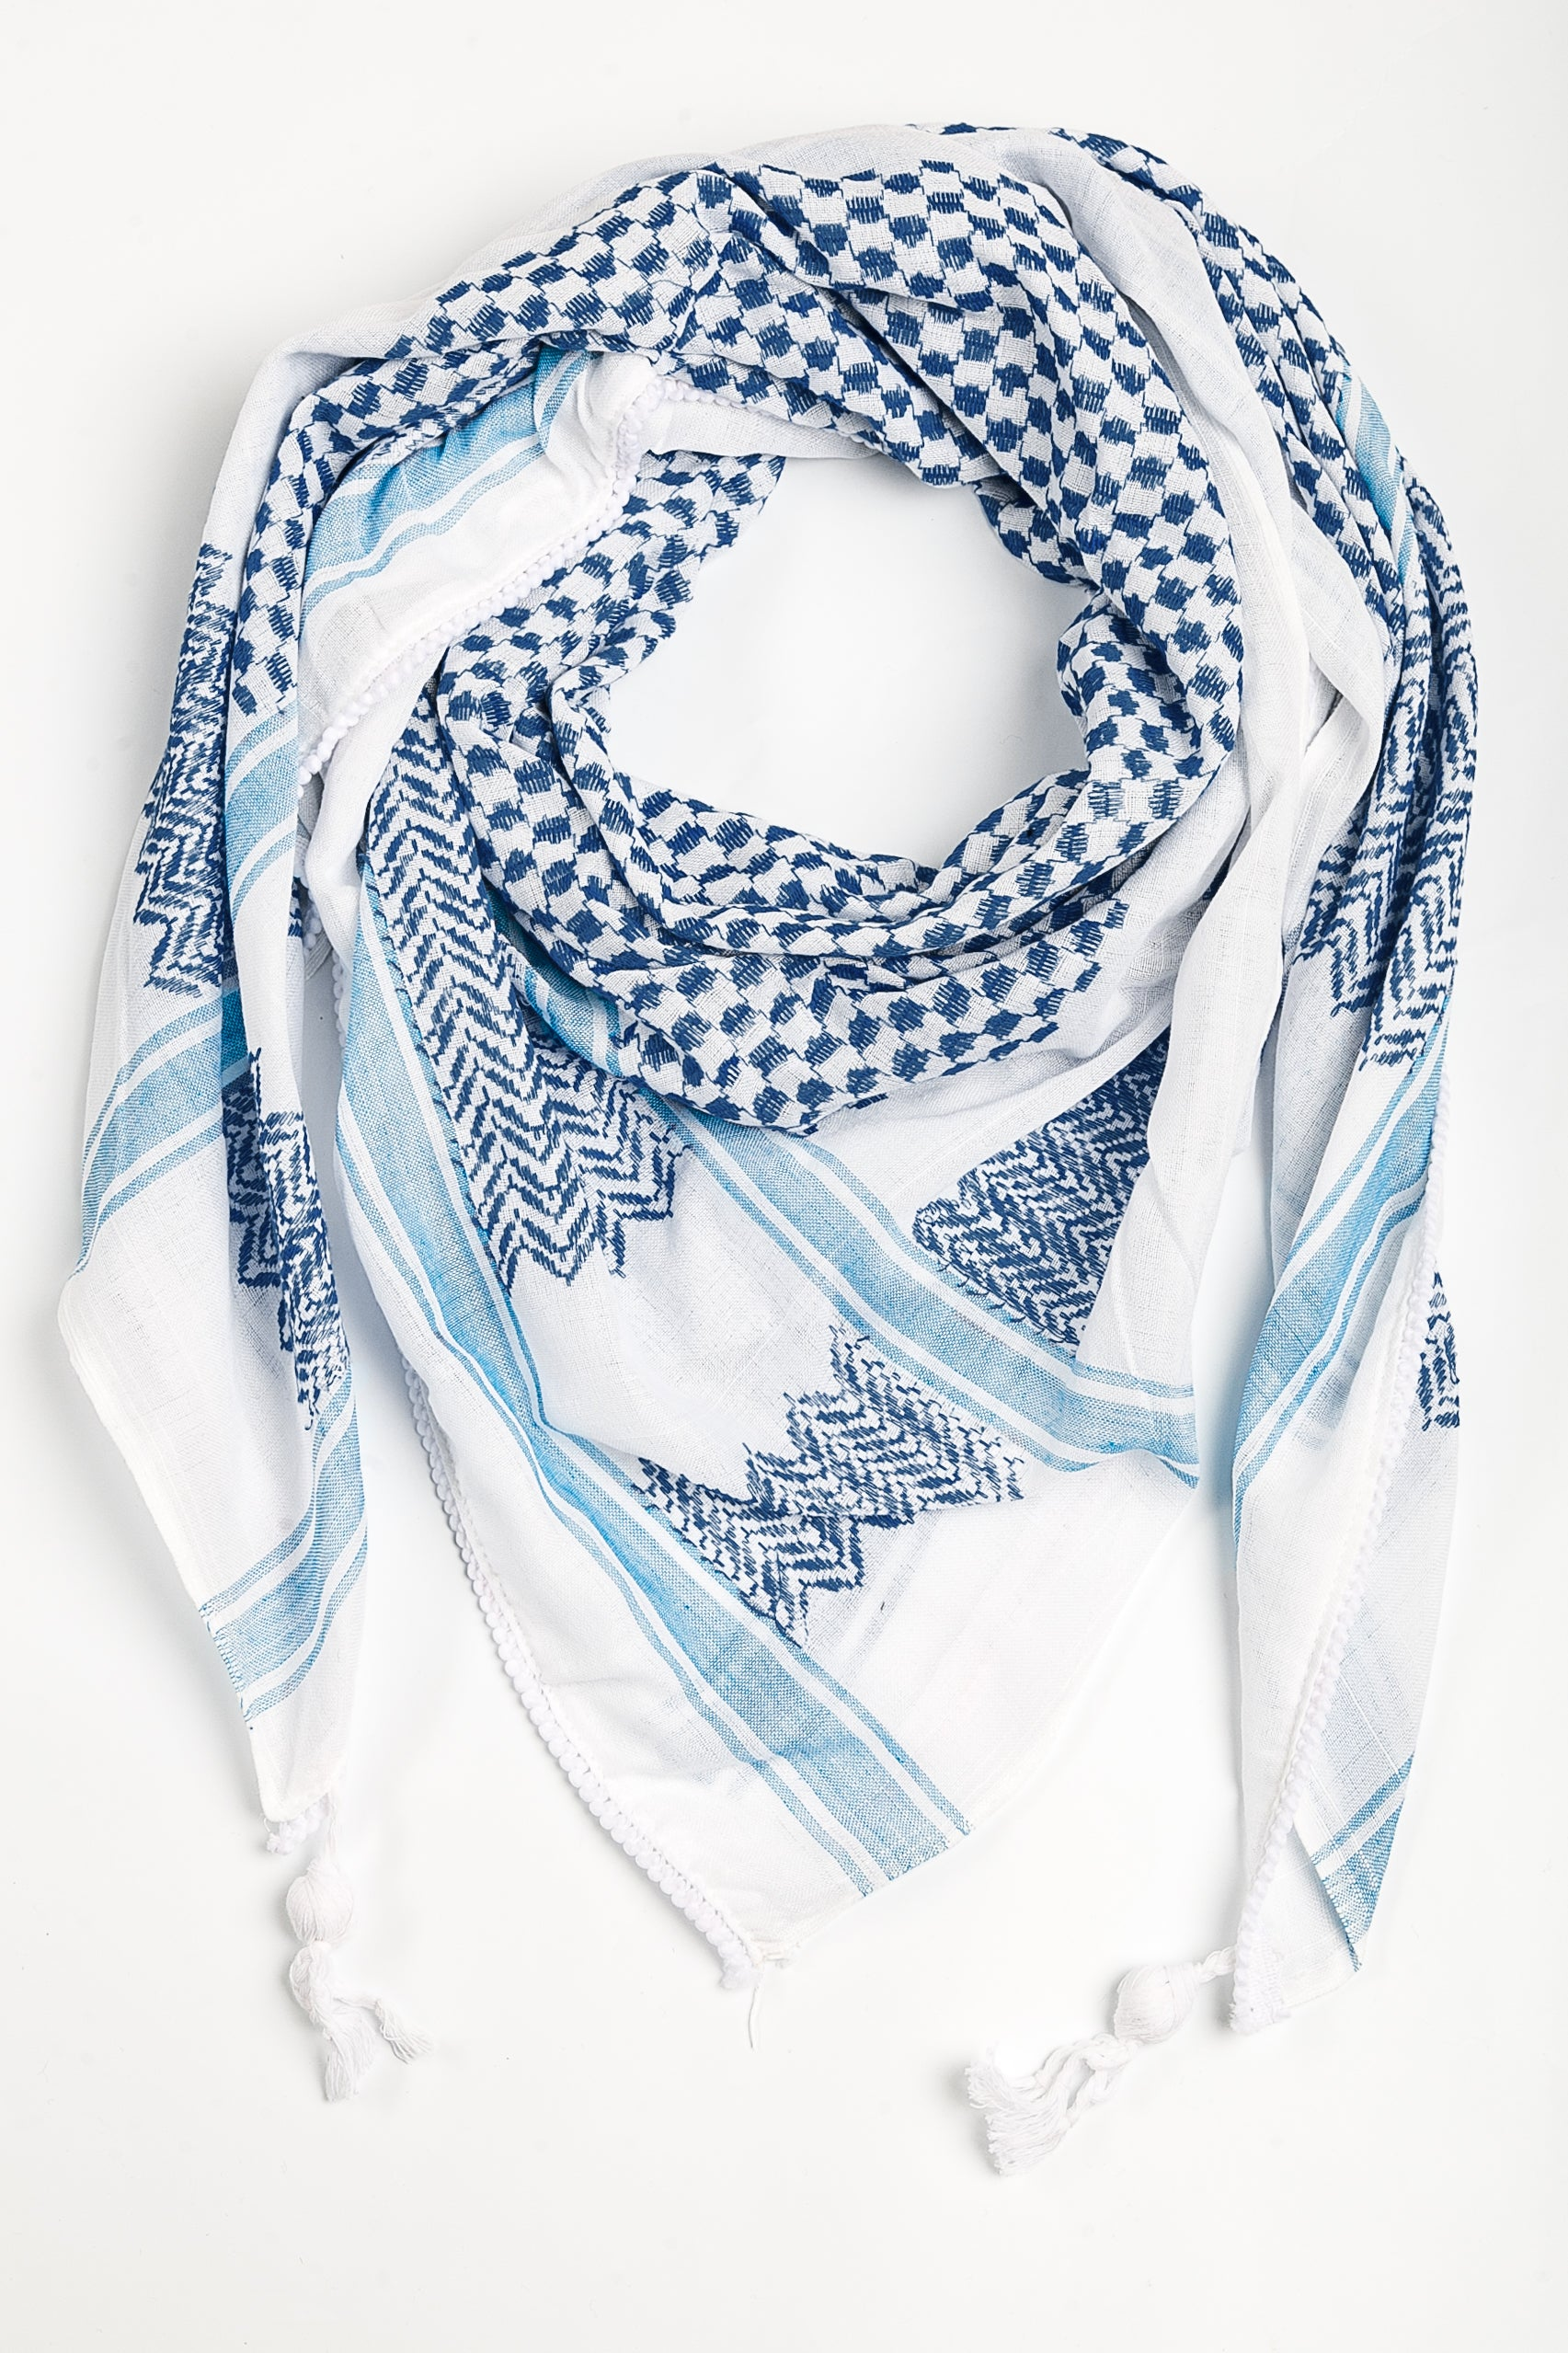 Palestinian kufiya white and blue